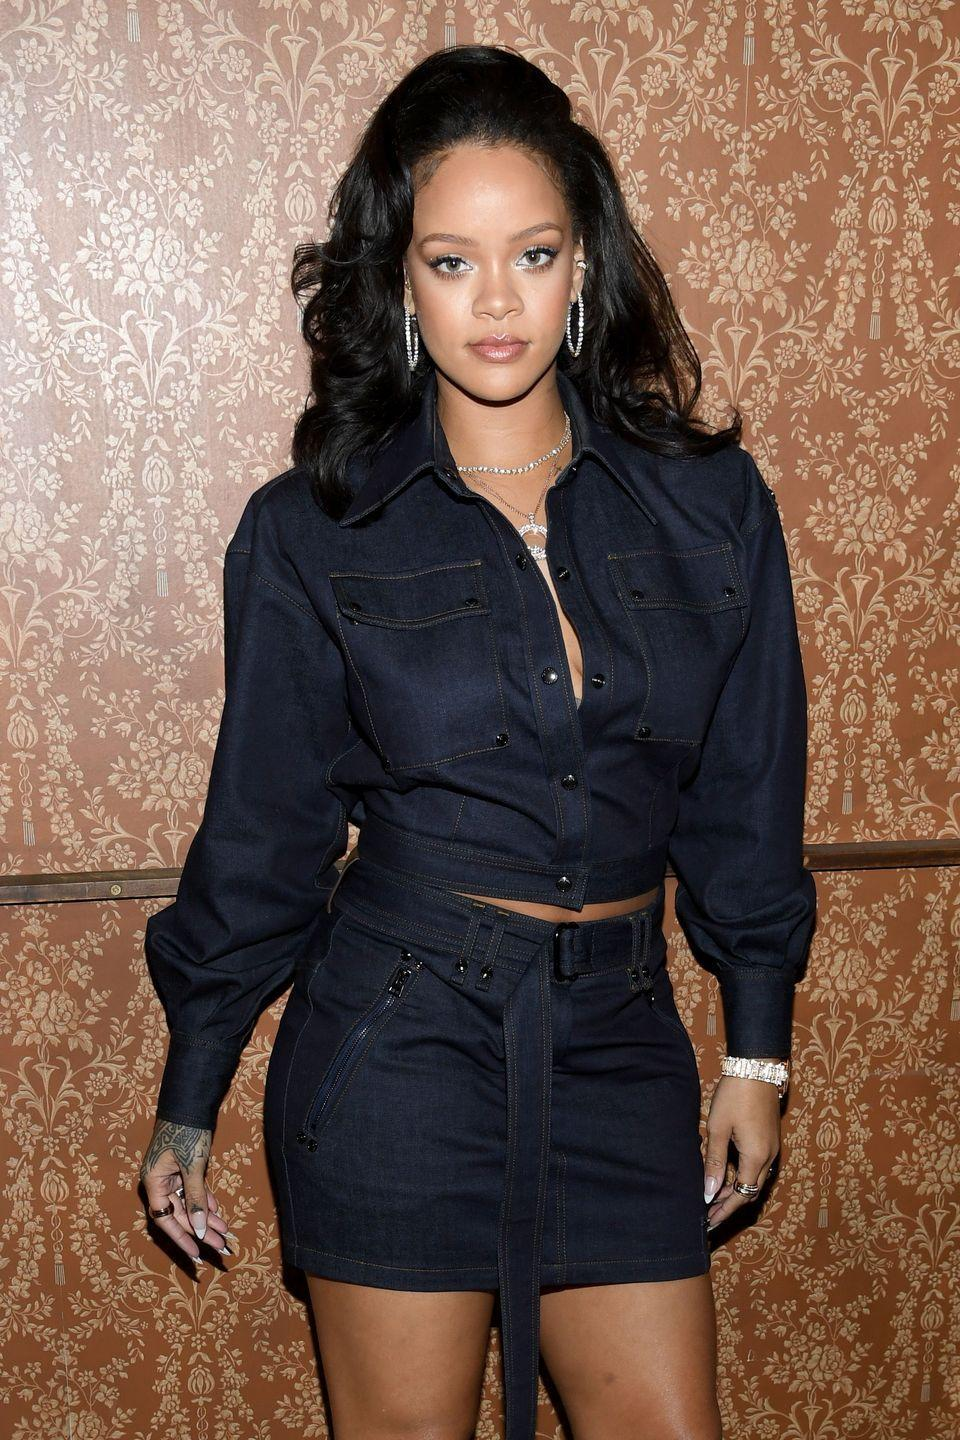 """<p>On a classic fall day in October 2016, Rihanna took down all of her exes – Drake, Chris Brown, Matt Kemp, and even Leonardo DiCaprio (rumored) – with a single <a href=""""https://www.instagram.com/p/BLU0-MyAeOE/"""" rel=""""nofollow noopener"""" target=""""_blank"""" data-ylk=""""slk:Instagram"""" class=""""link rapid-noclick-resp"""">Instagram</a>, and she didn't even have to show her face. A text-only gram that says, </p><p>'None of my exs (sic) are married or in happy relationships so it's safe to say that I wasn't da problem lol,' has received close to 1 million likes. Is Rihanna the best or what?</p>"""